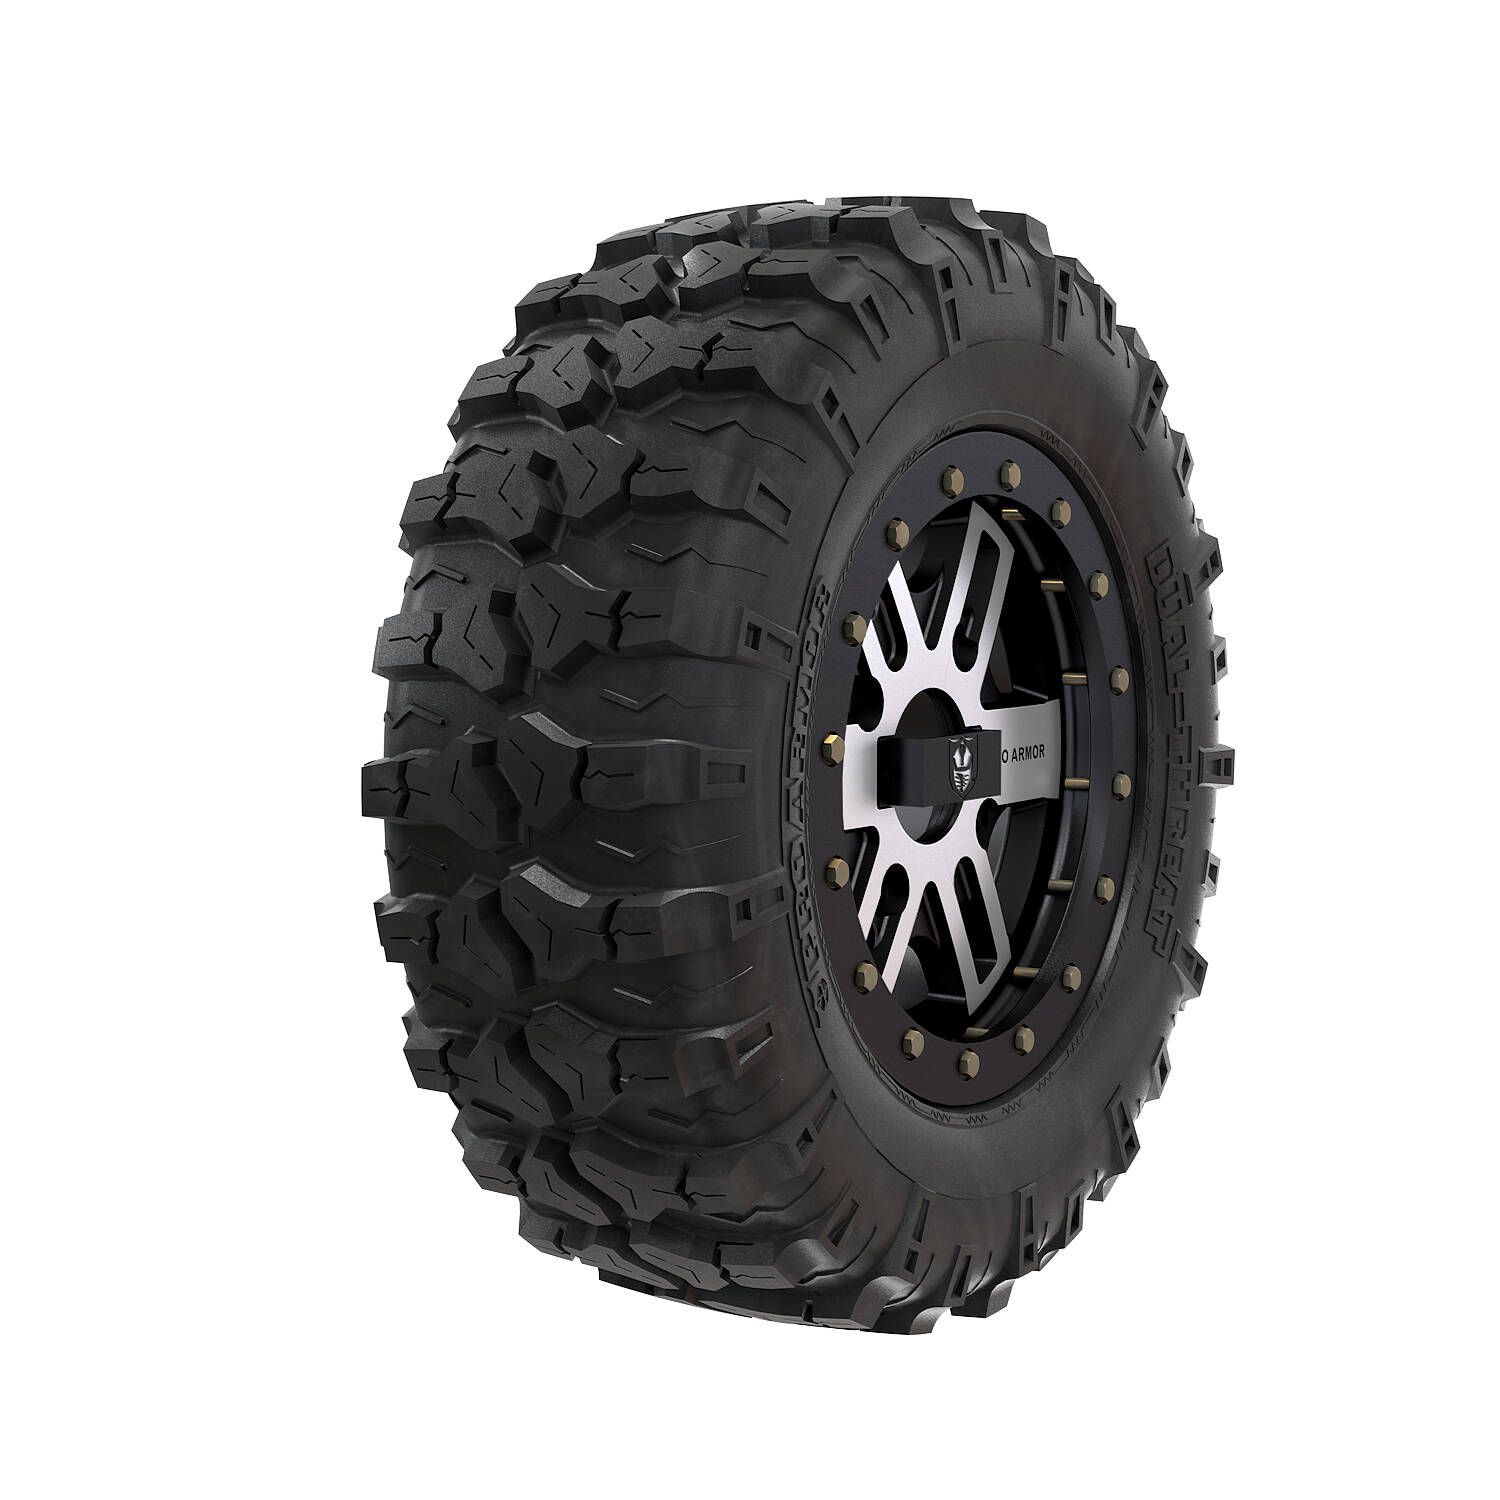 Pro Armor® Wheel & Tire Set: Combat - Accent & Dual Threat 26""